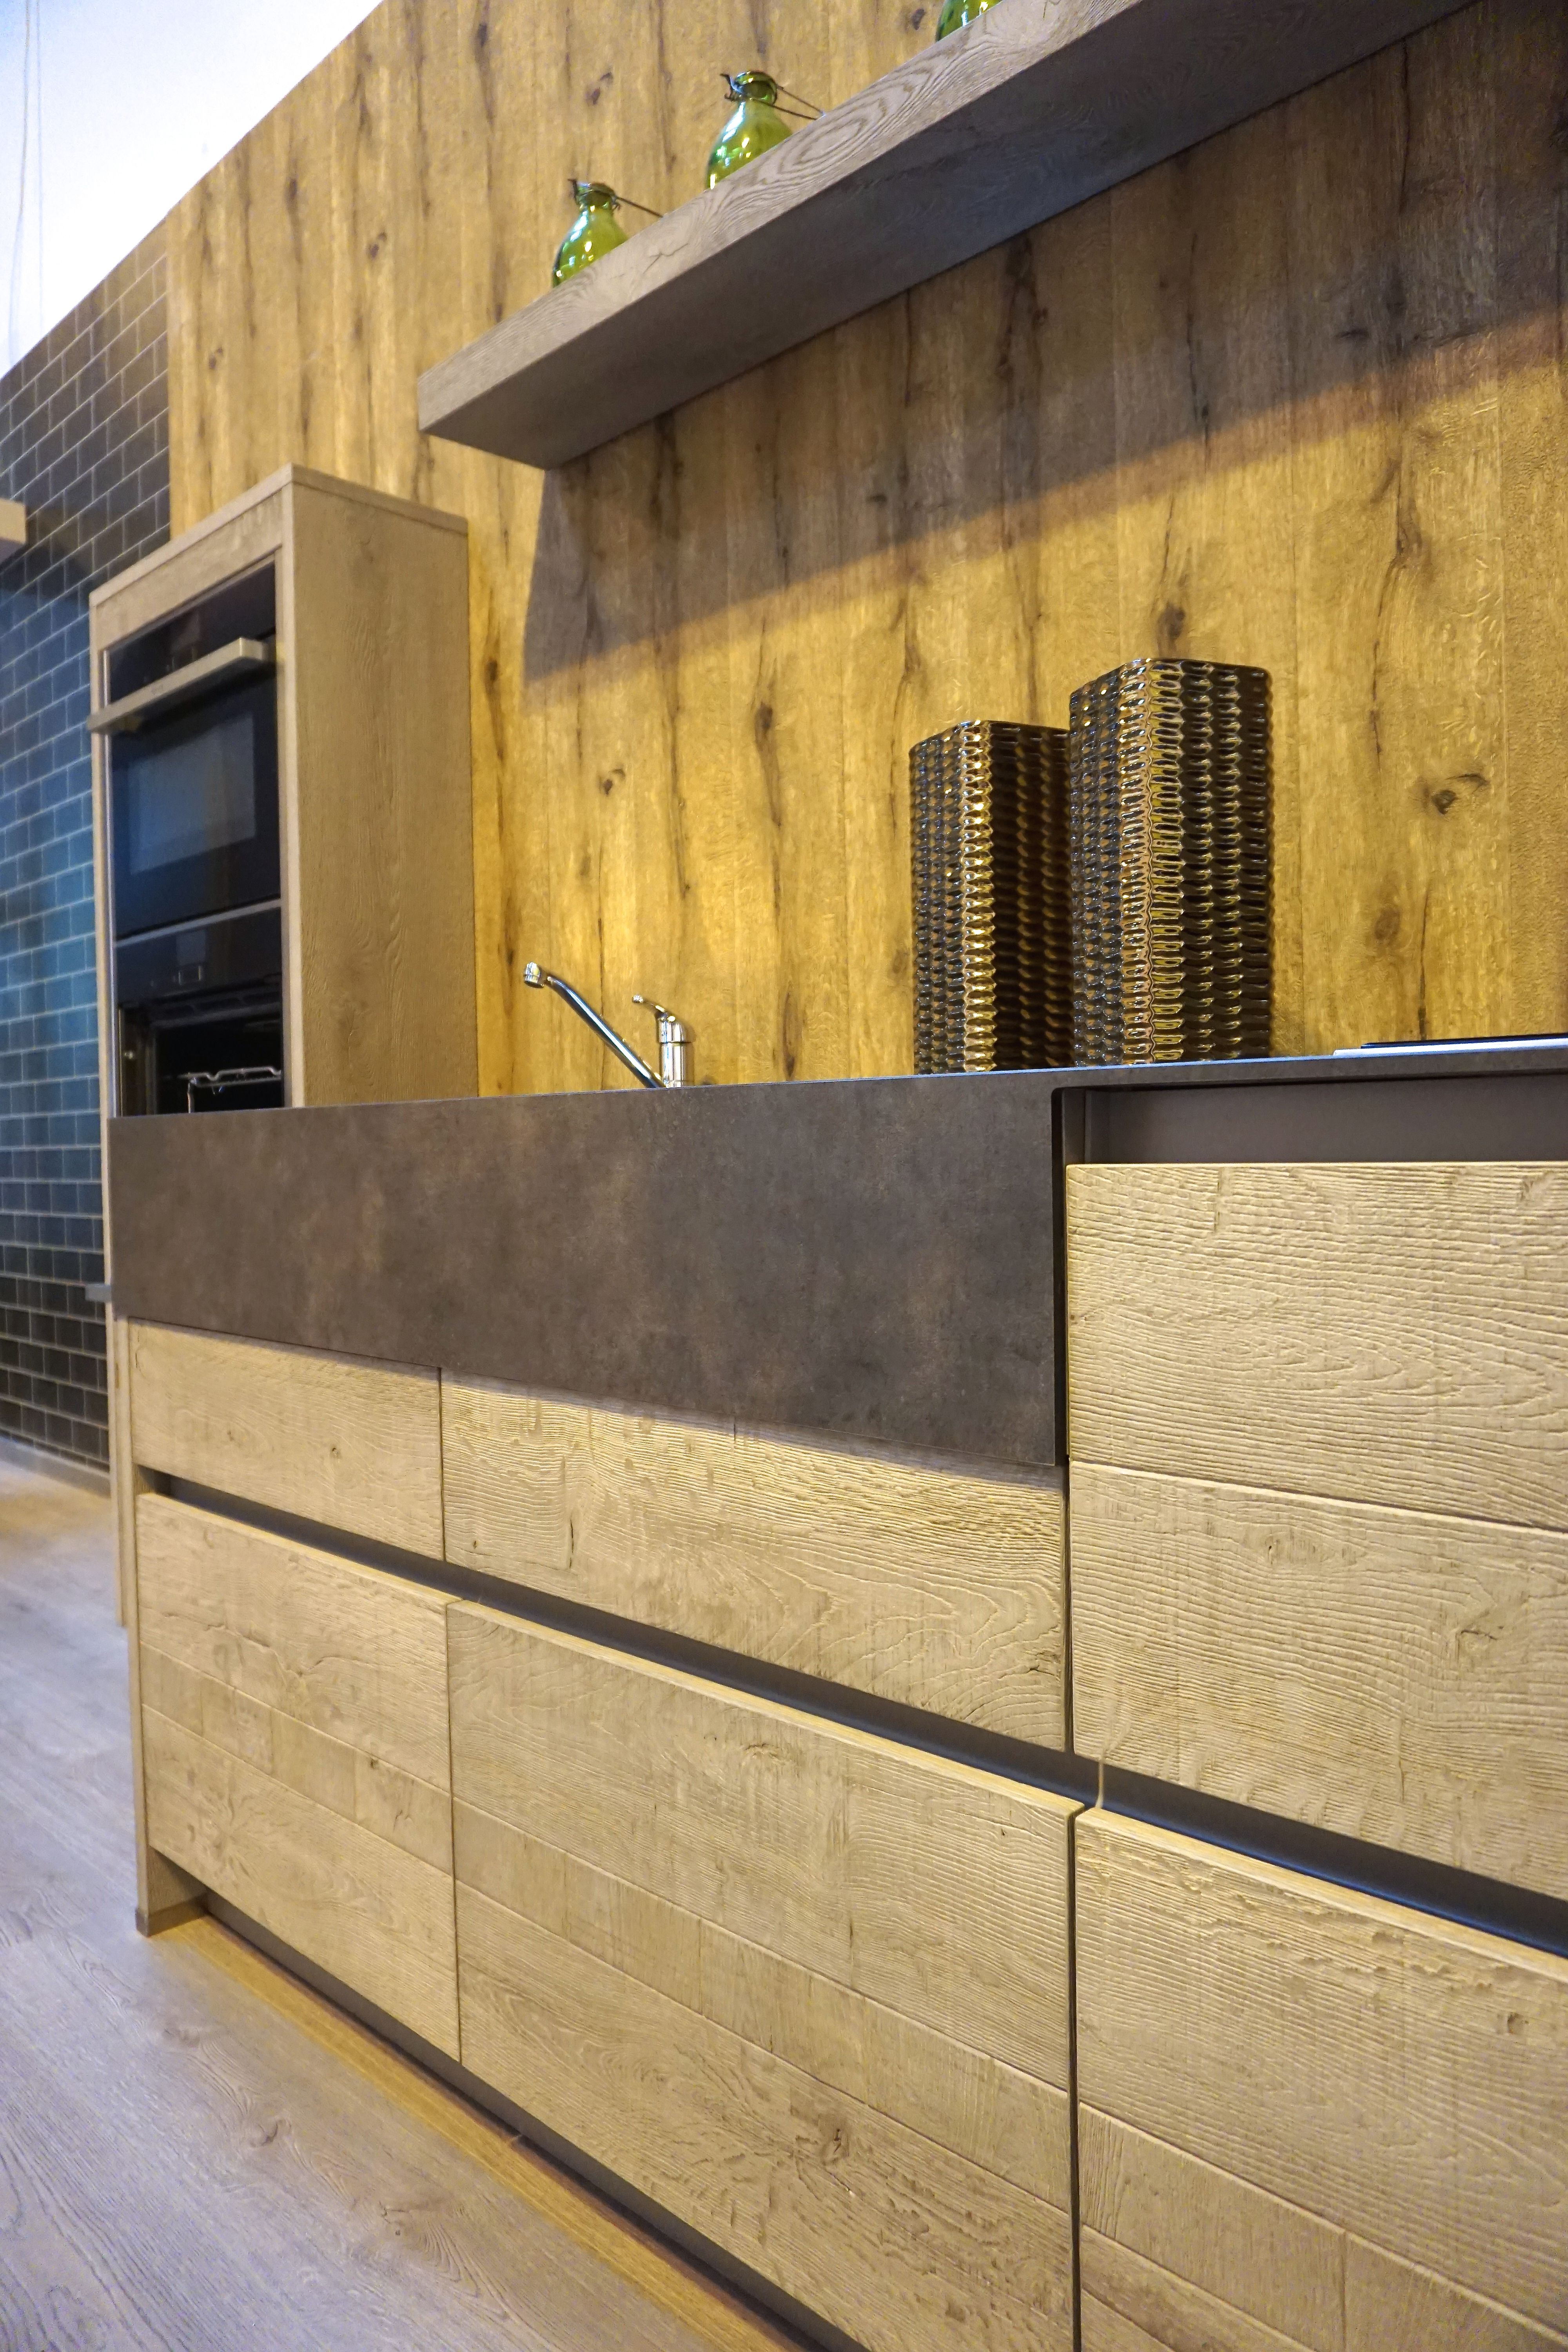 Innovative new timber veneers noted for 2016 at KBB Birmingham. Wide slab timber veneer & Innovative new timber veneers noted for 2016 at KBB Birmingham ...